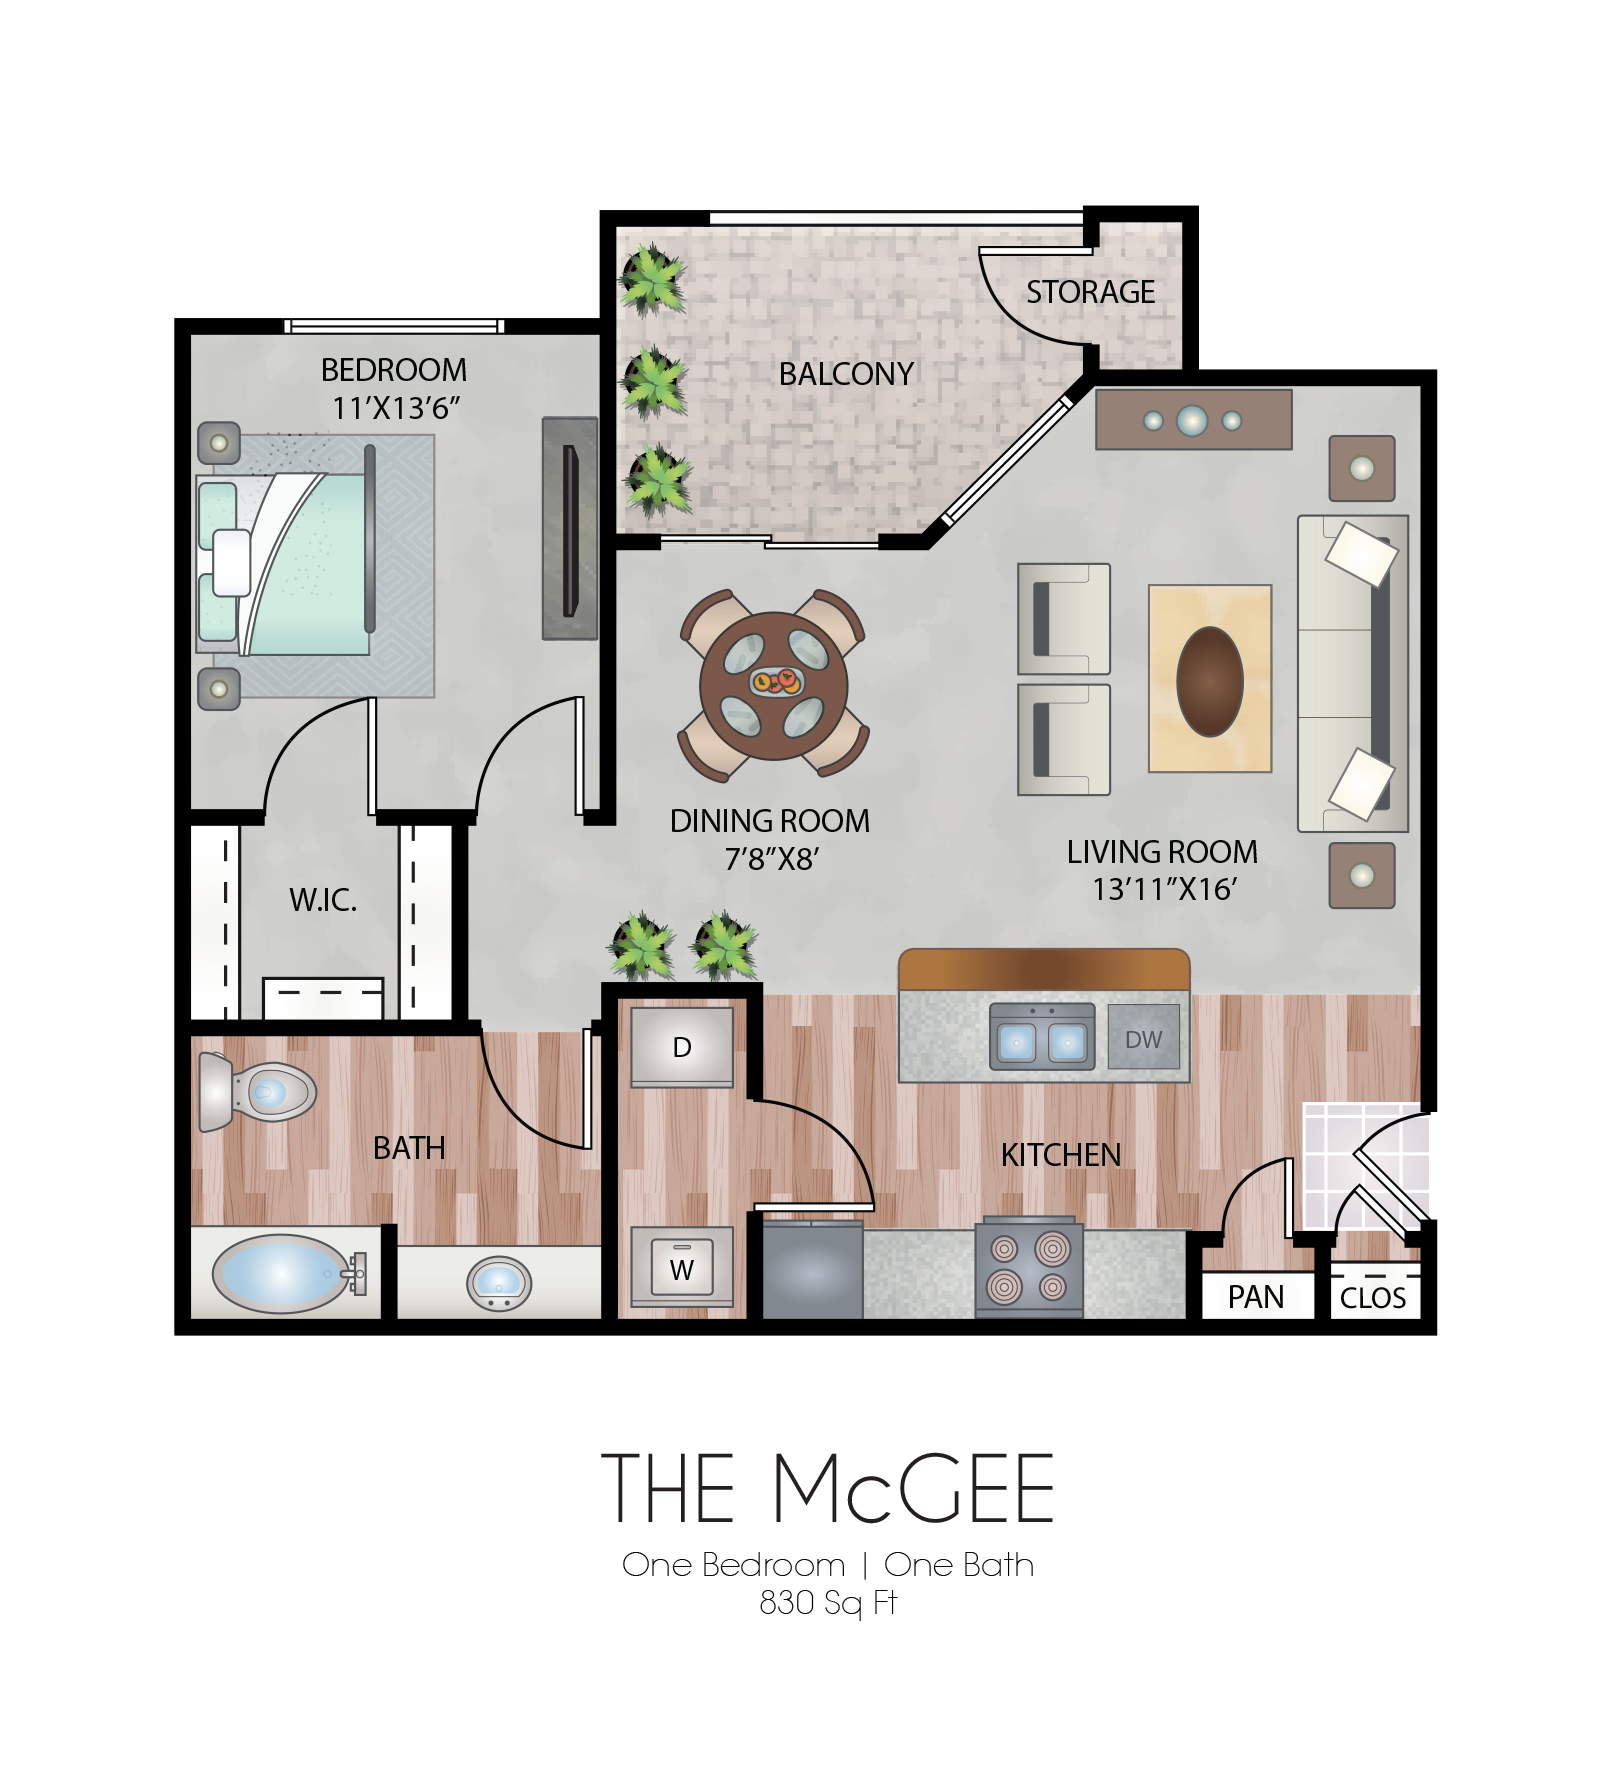 Floorplan - The McGee image